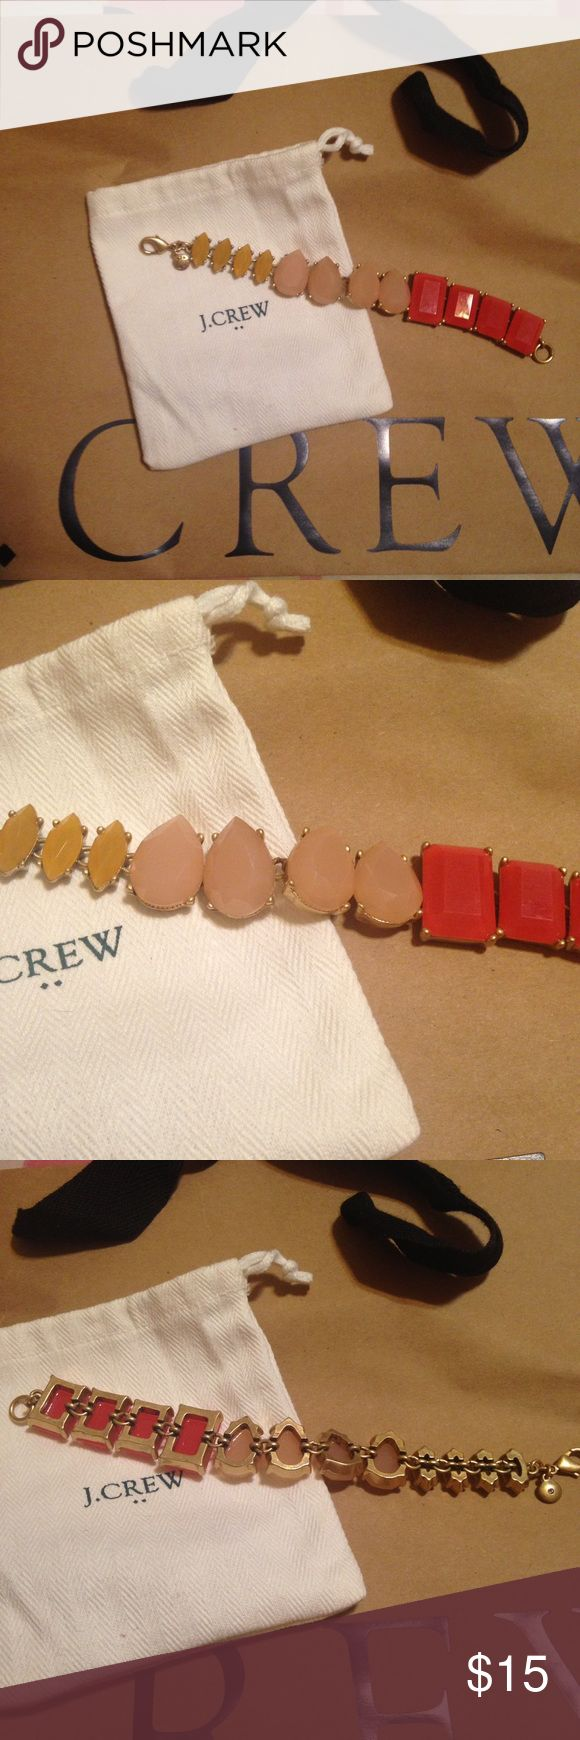 J.Crew Beaded statement bracelet Fun bracelet by J.Crew! Bronze metal links and lobster claw clasp. Stones in watermelon pink, ballet pink and golden yellow add the perfect pop to your outfit! Measures 7 inches long. J. Crew Jewelry Bracelets